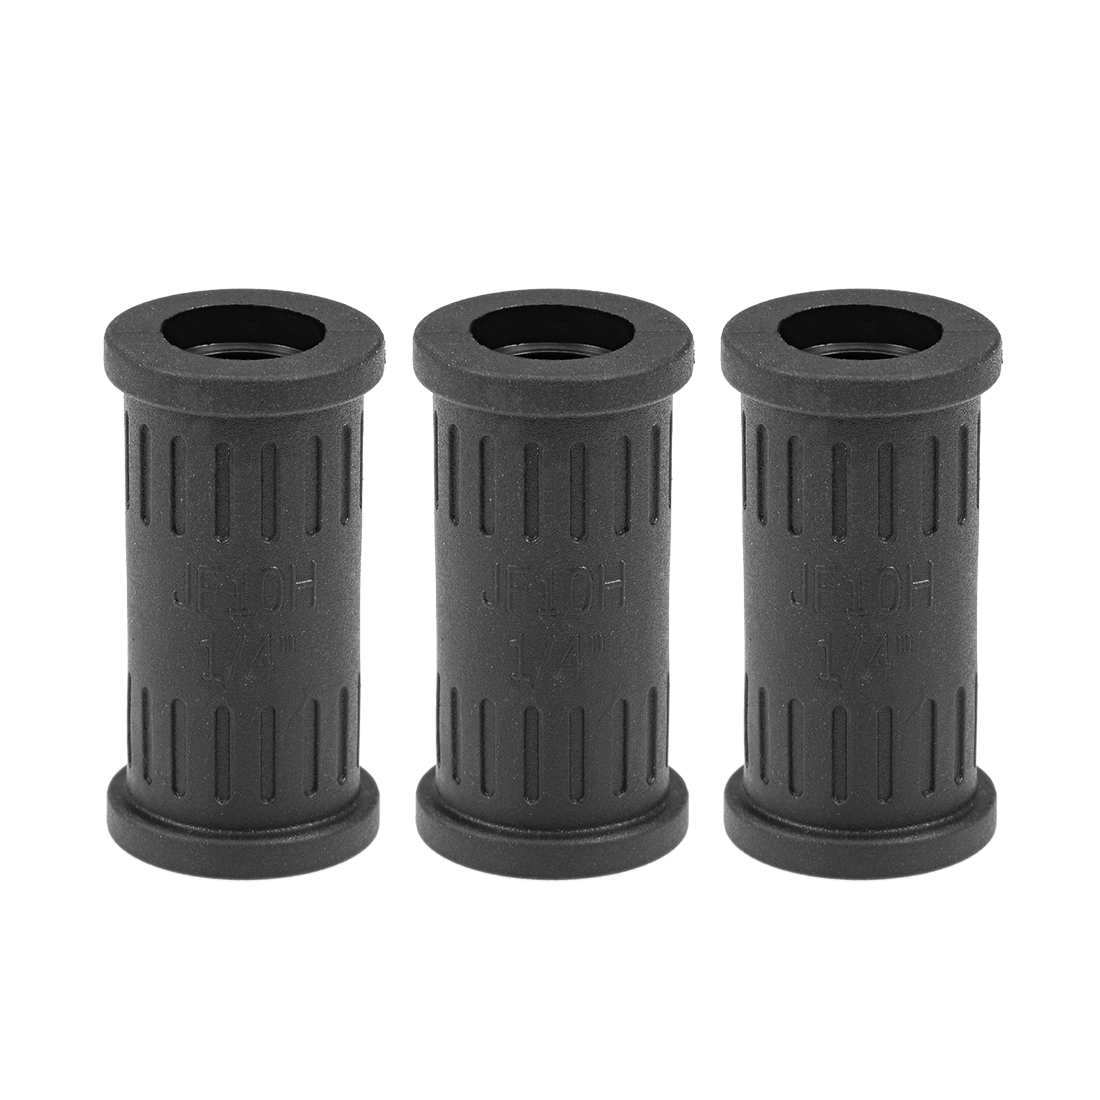 Cable Gland Corrugated Tube Connector AD10 Pipe Joint Clamps 3Pcs